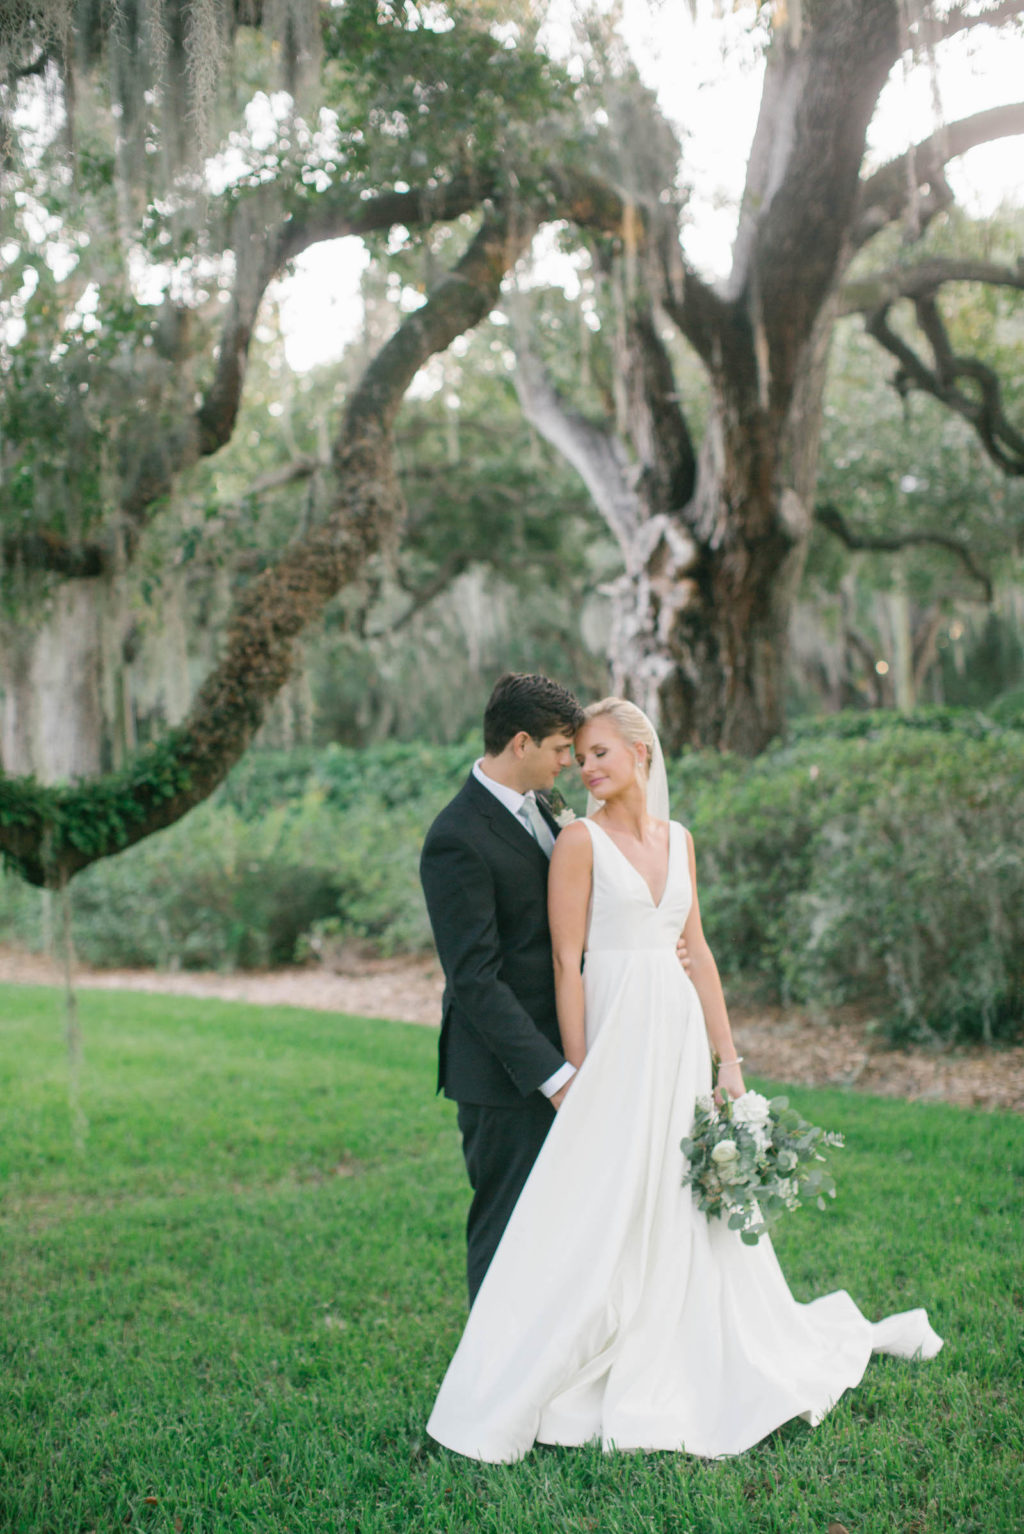 Bride and Groom Wedding Portrait | Bride in BHLDN Illusion Back Wedding Ballgown Dress with Classic Updo and Natural Makeup | South Tampa Hair and Makeup Artist Femme Akoi Beauty Studio